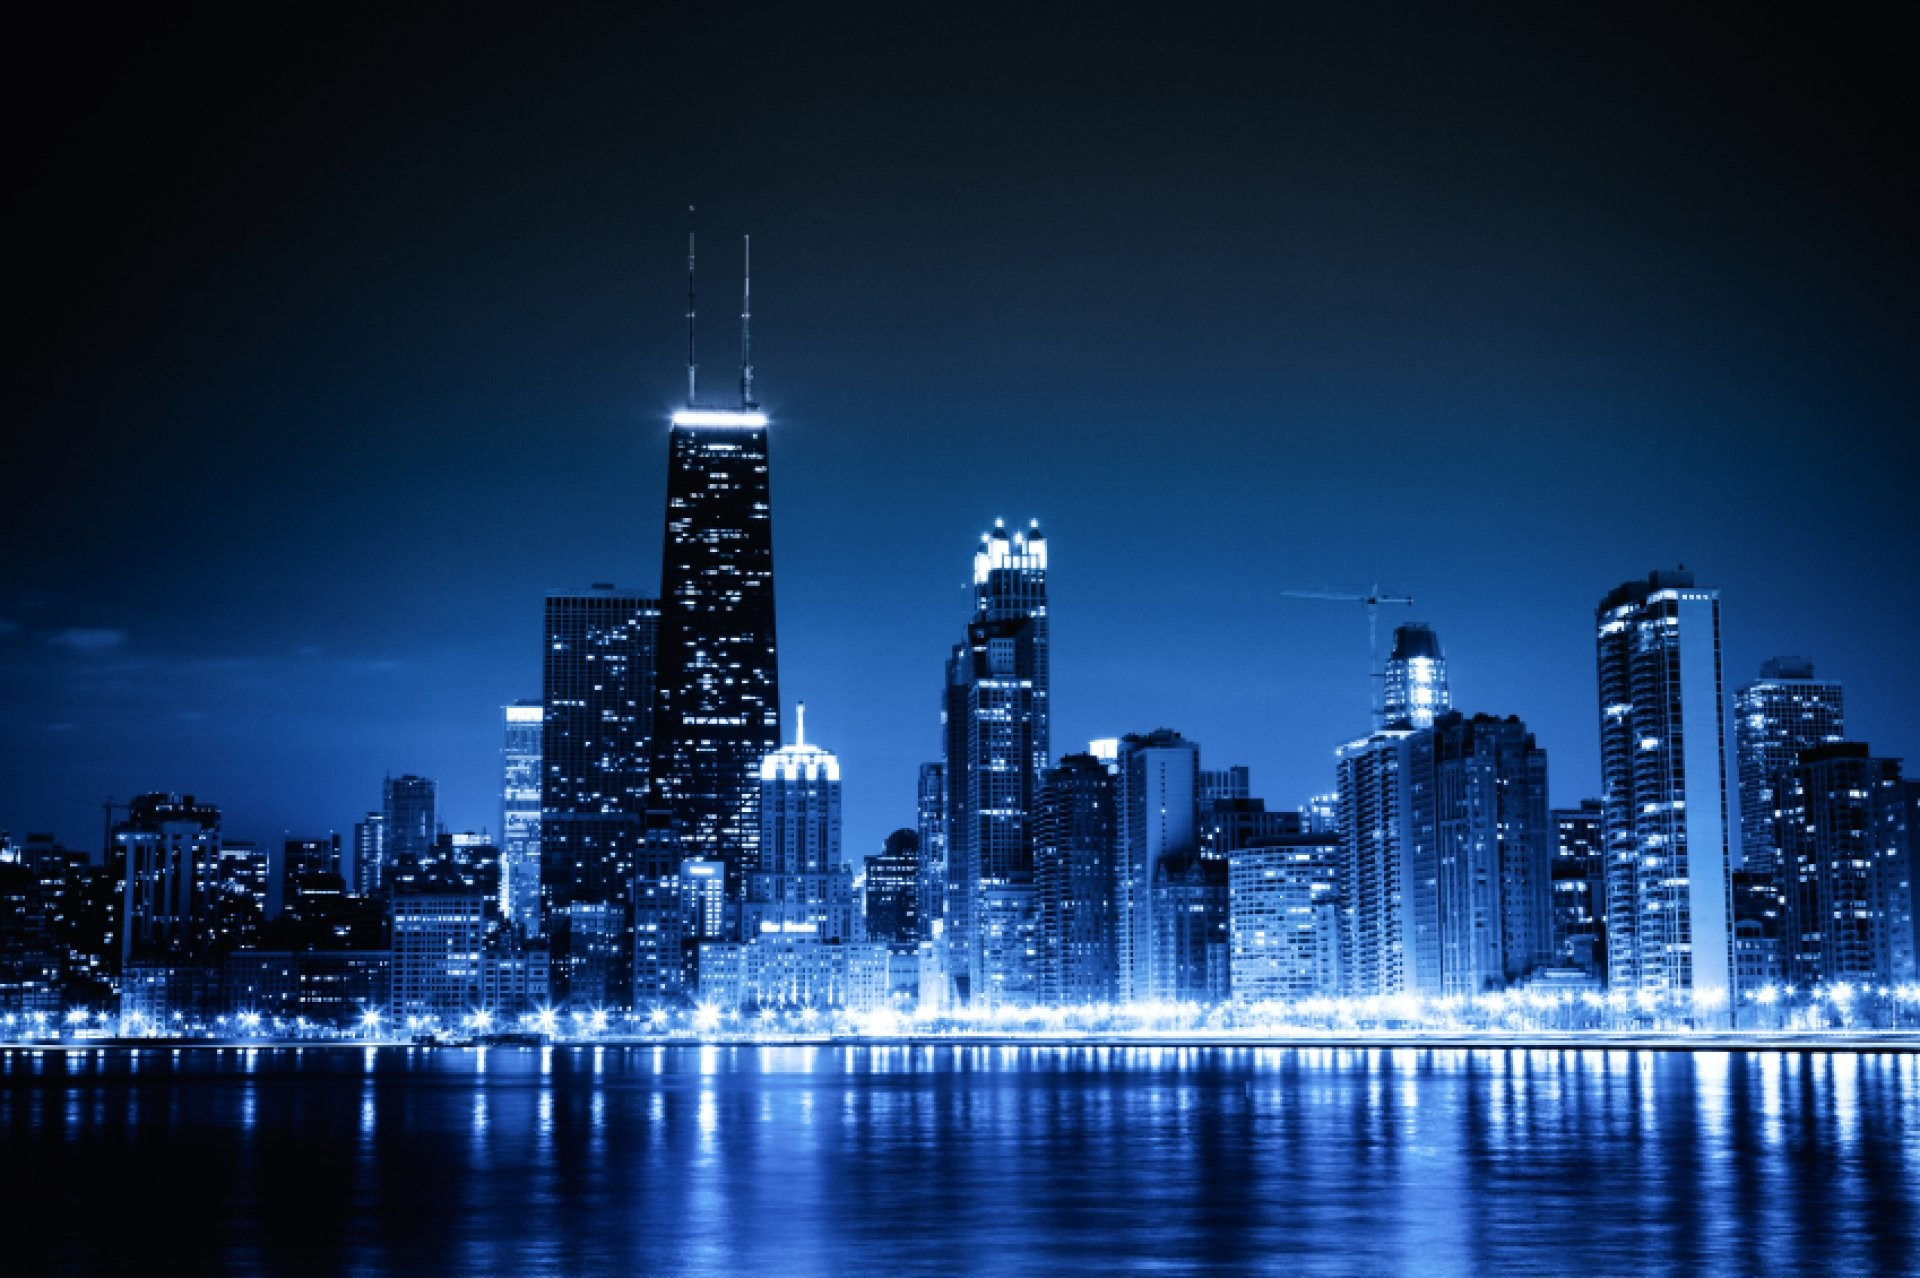 chicago wallpaper iphone 6 – Google Search